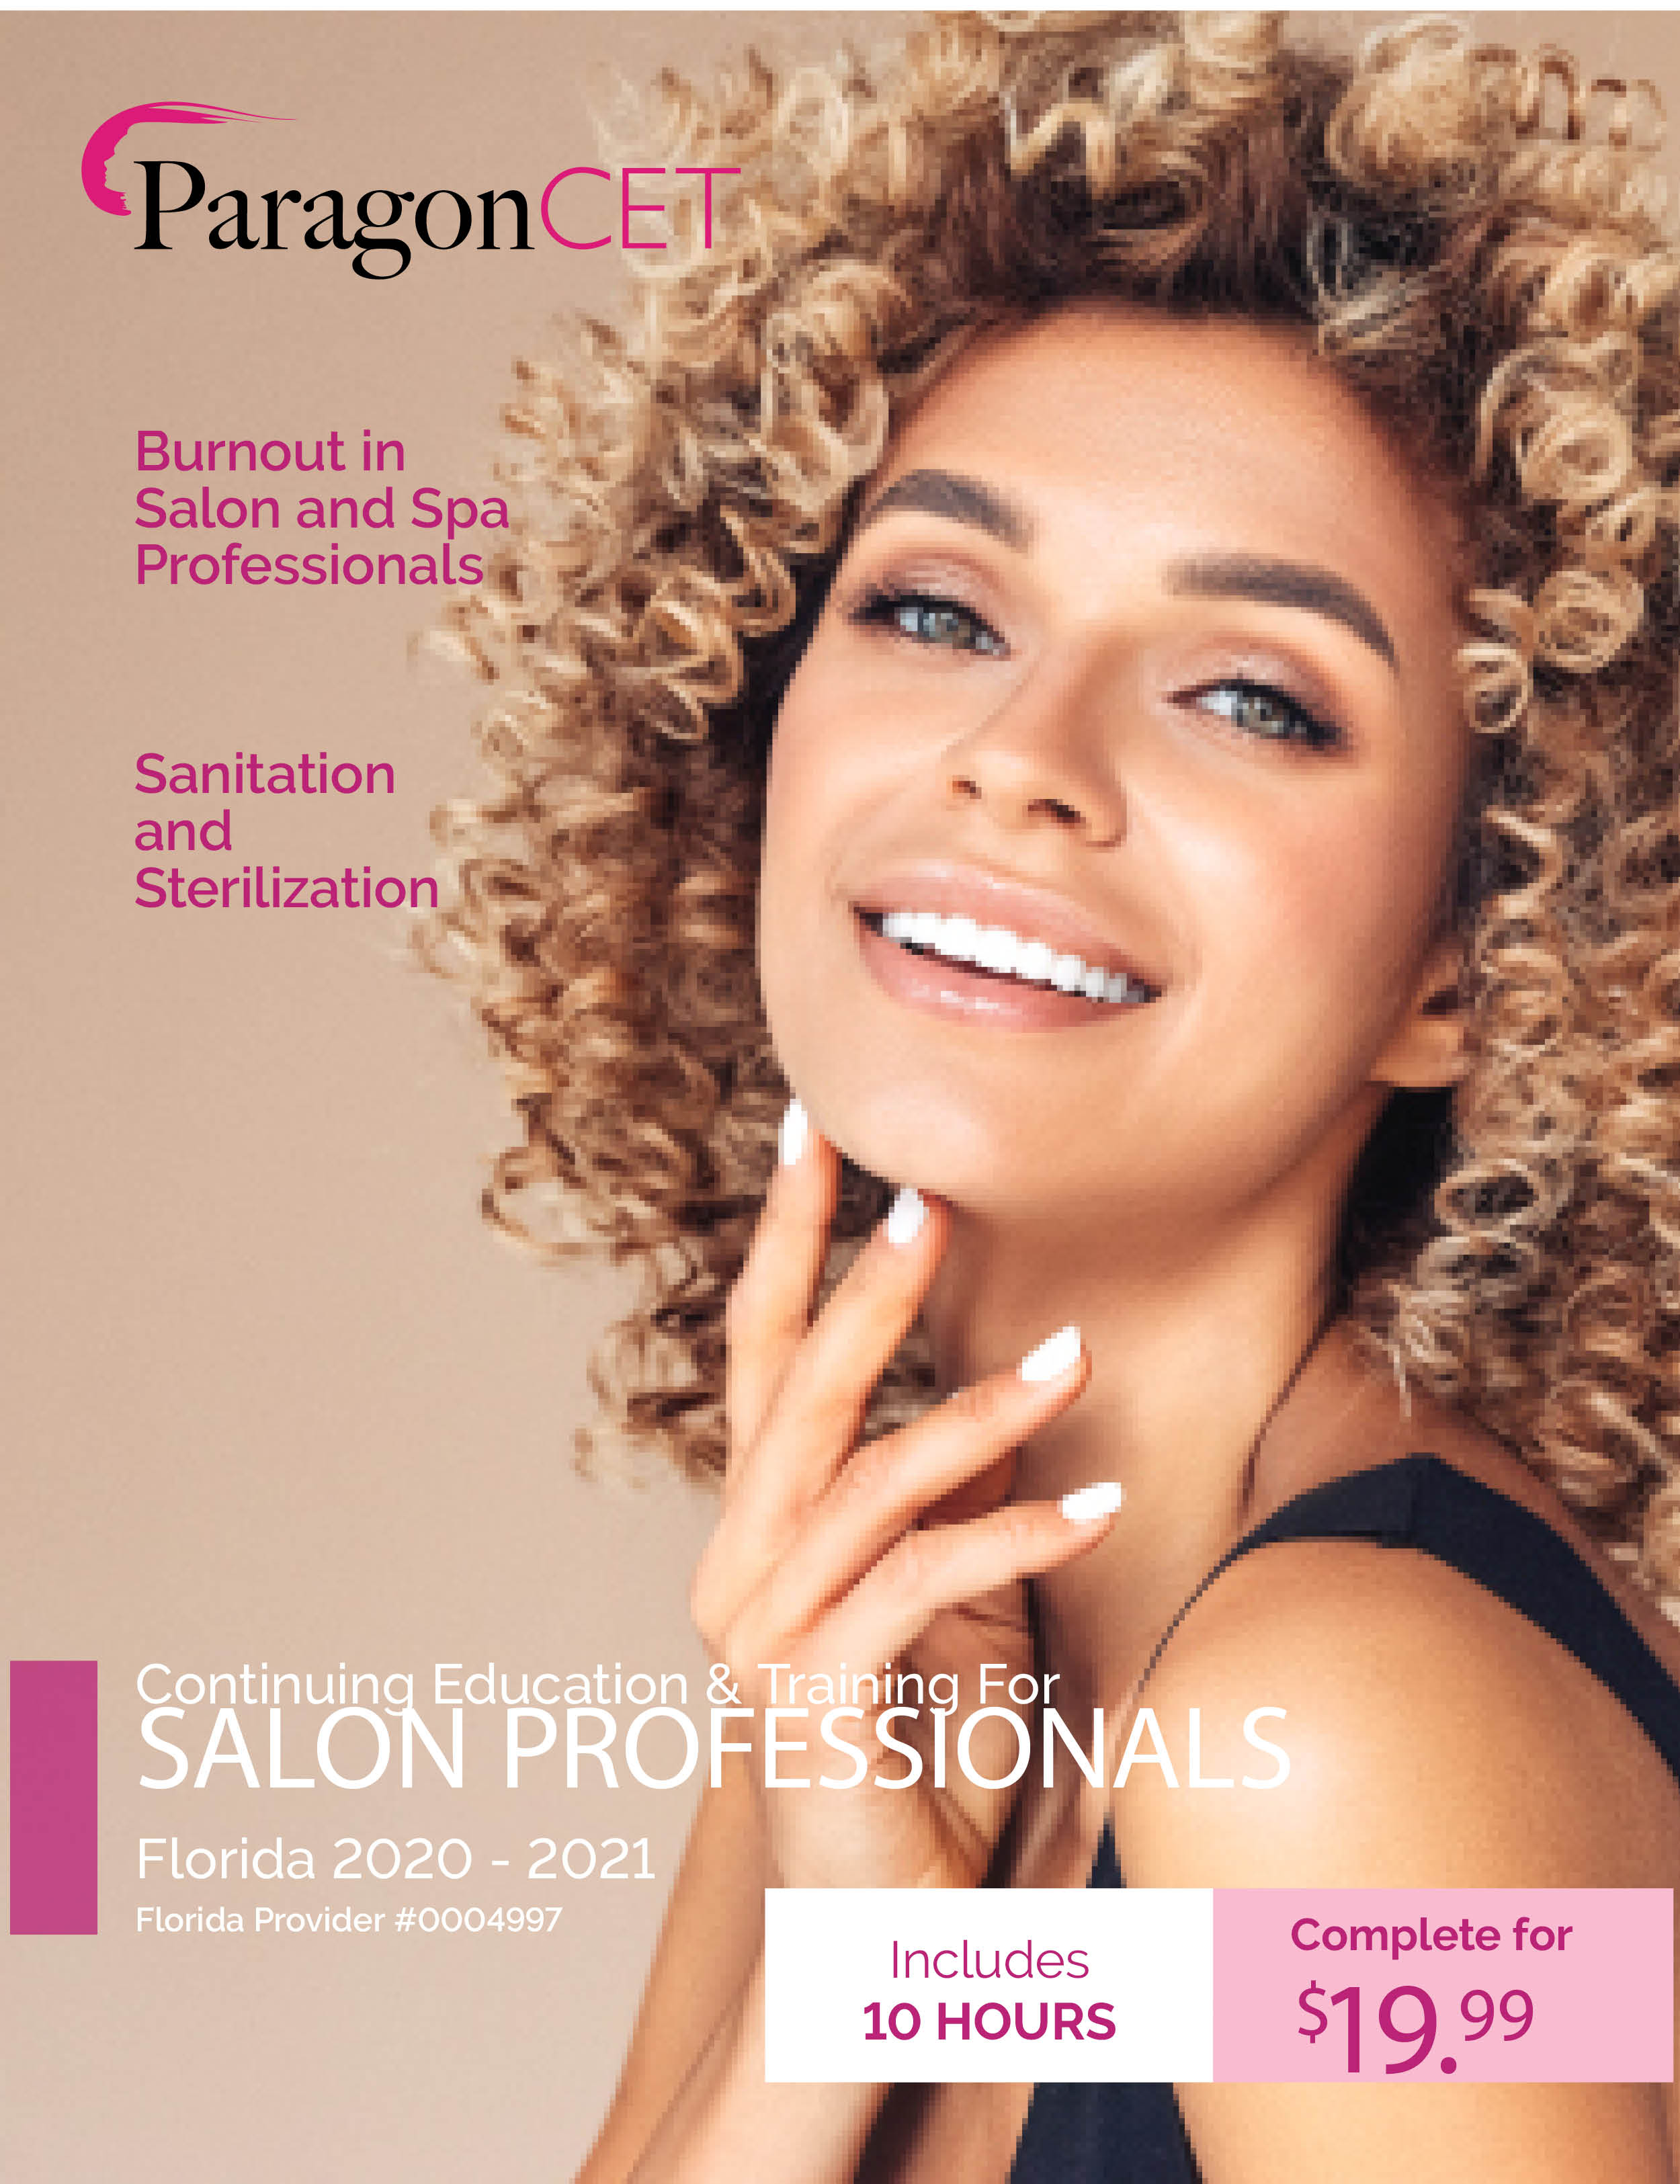 10-Hour CE Course for Florida Salon Professionals (Including Burnout Elective)